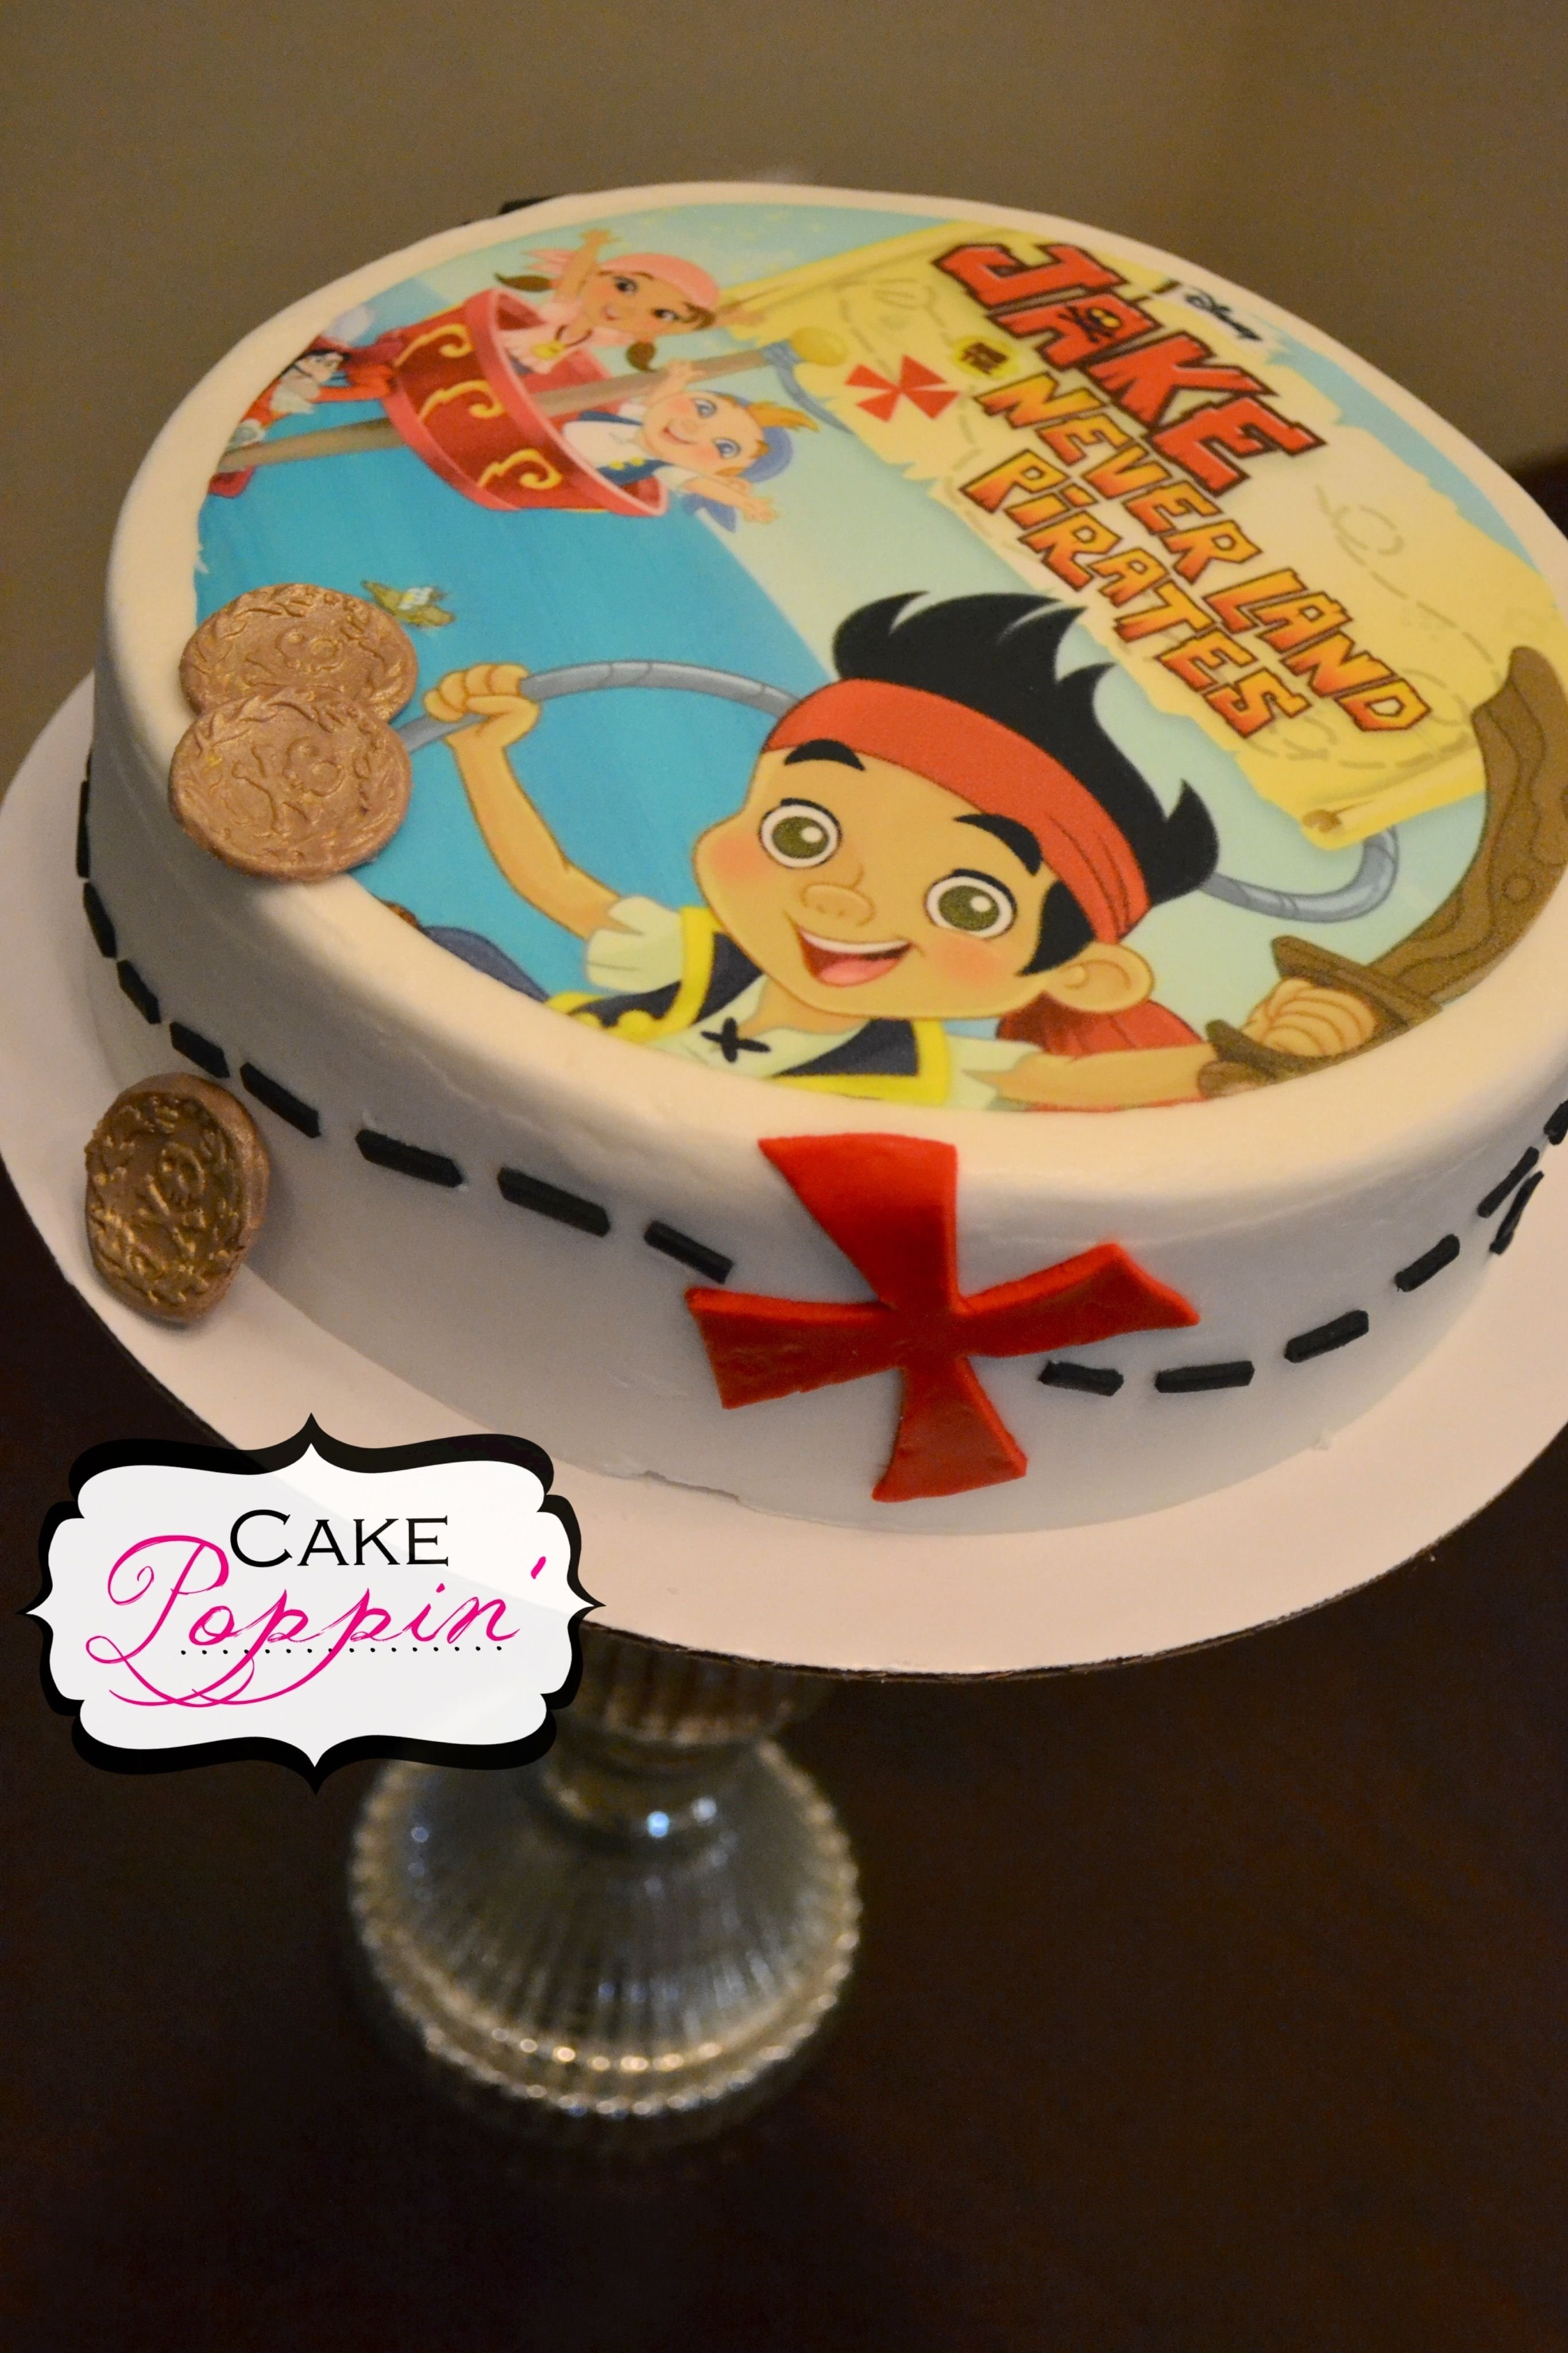 10 Lovable Jake And The Neverland Pirates Cake Ideas jake and the neverland pirates cake fiesta infantil pinterest 2021